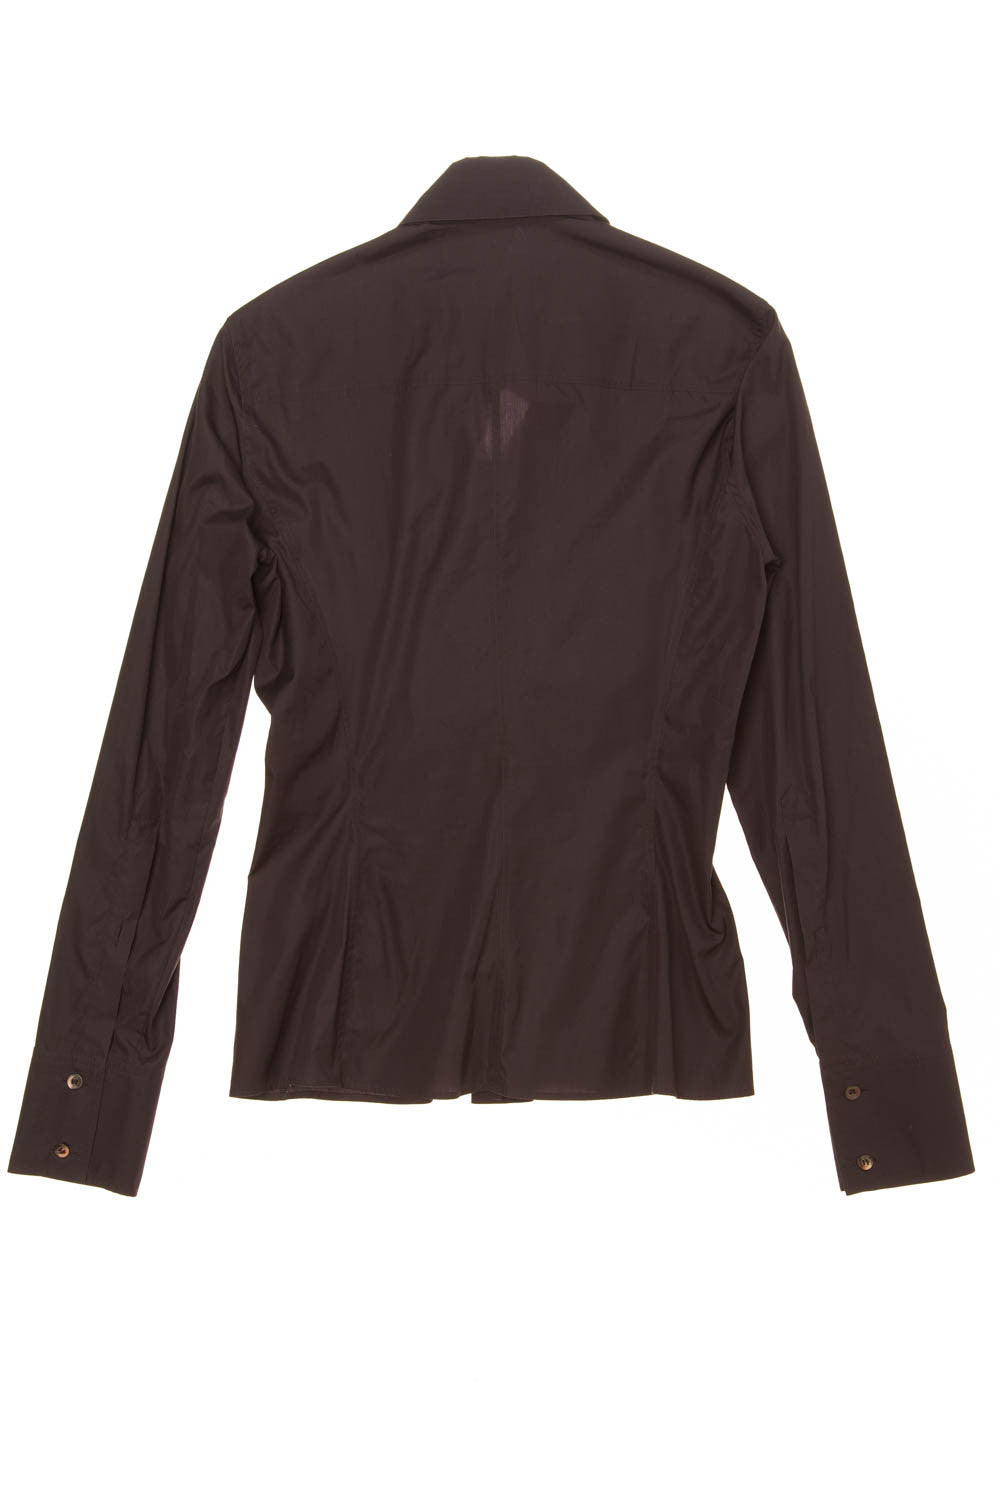 6671a20791d56a Iconic Tom Ford for Gucci - Eggplant Long Sleeve Button Up Blouse with Bow  - IT